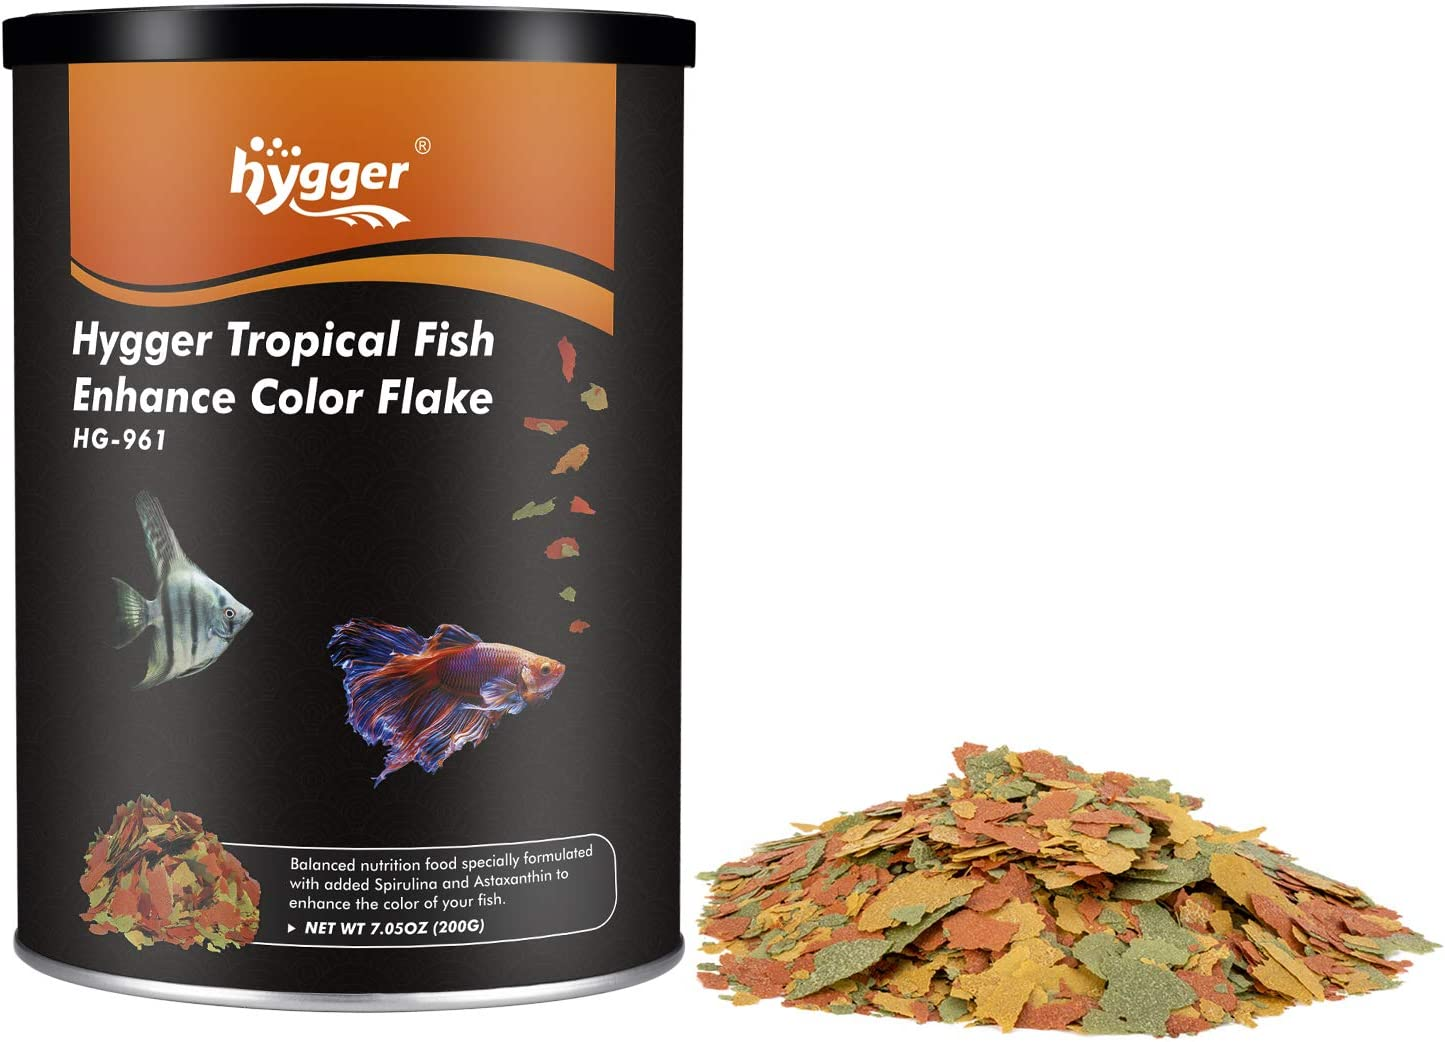 hygger Color Enhancing Tropical Fish Flake Food for Betta Guppy Barb Goldfish High Protein Vitamin-Enriched Support for Immune System Clear Water, 7-oz Jar